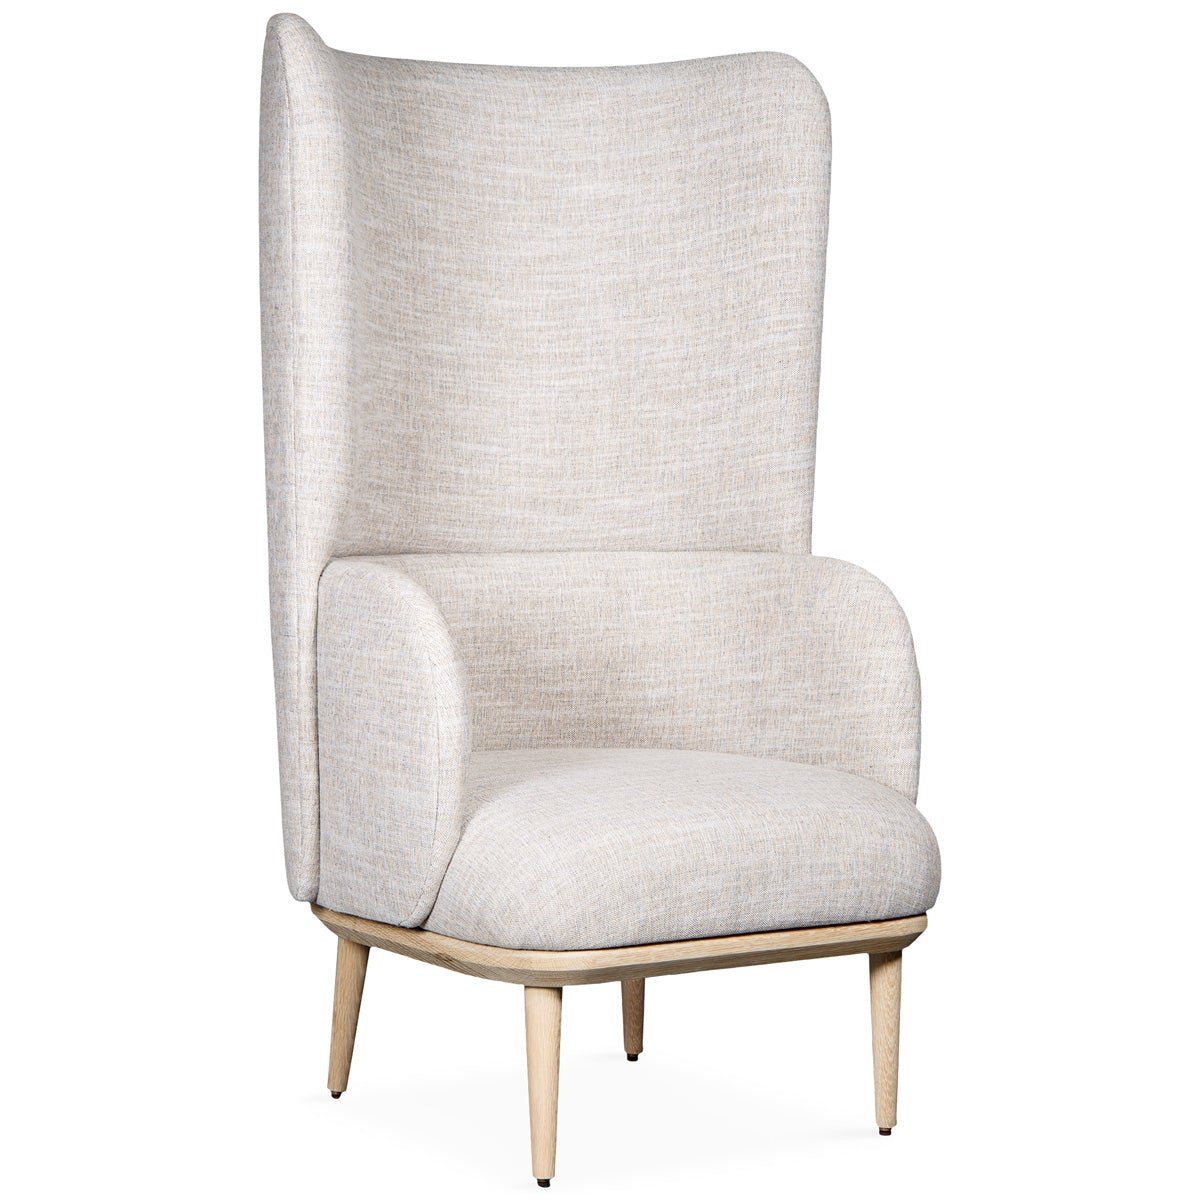 Copenhagen Tall Wing Chair - ModShop1.com